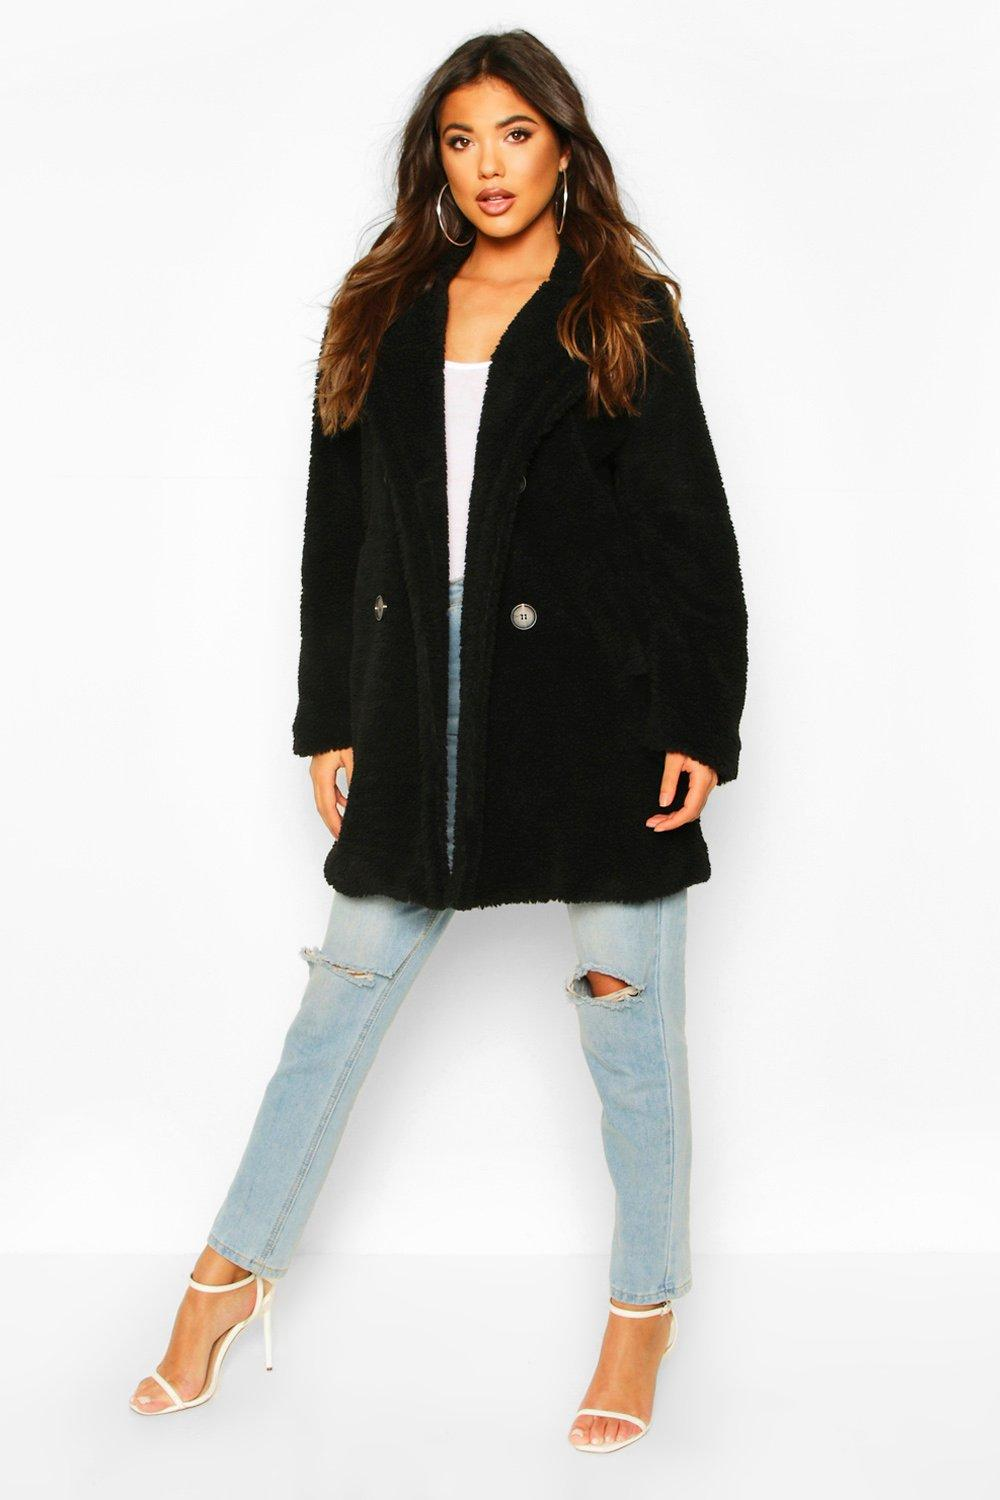 boohoo Womens Faux Fur Double Breasted Coat - Black - 12, Black